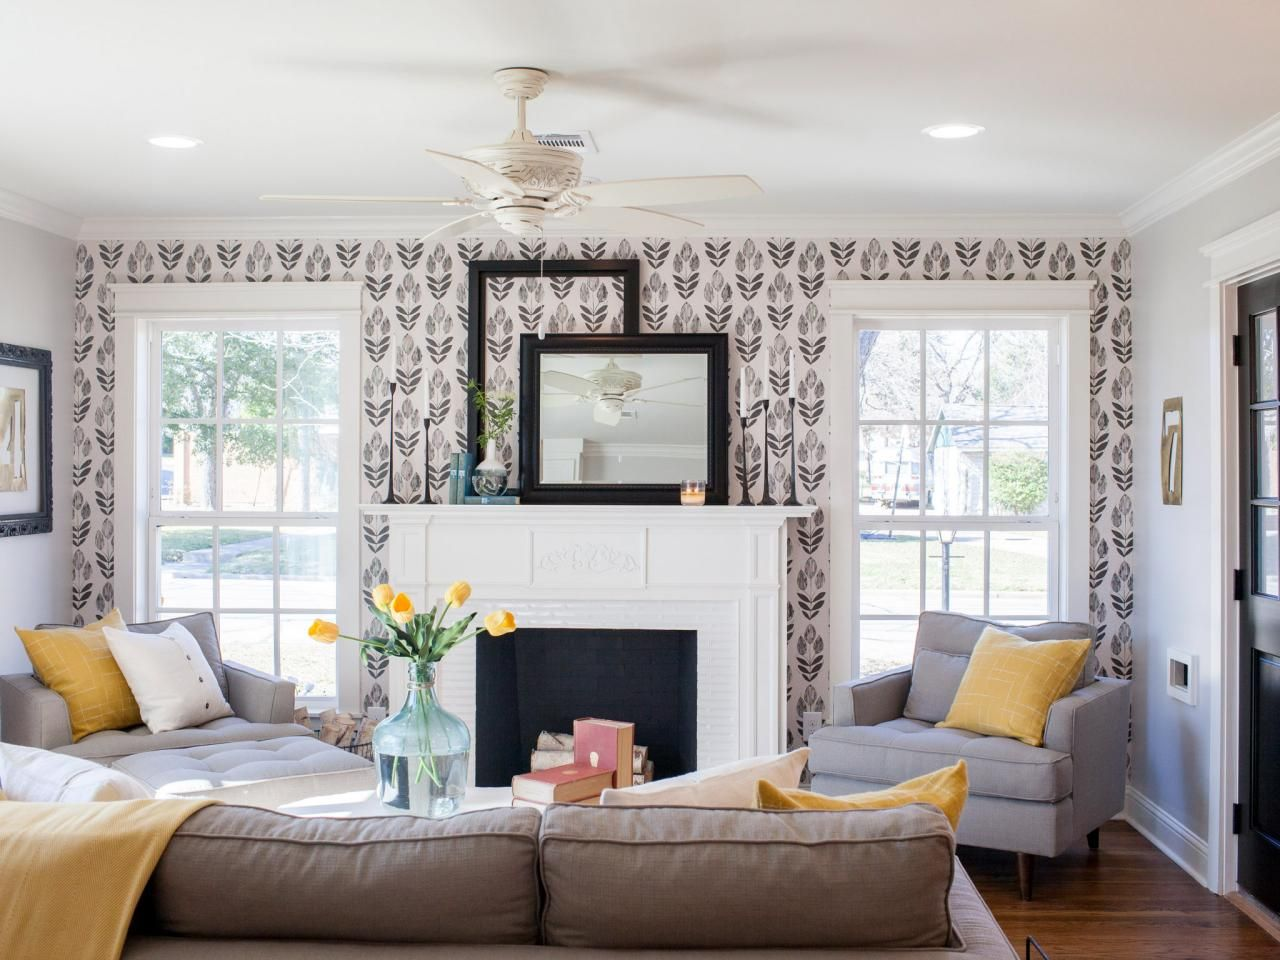 photos | hgtv's fixer upper with chip and joanna gaines | hgtv, Wohnzimmer dekoo